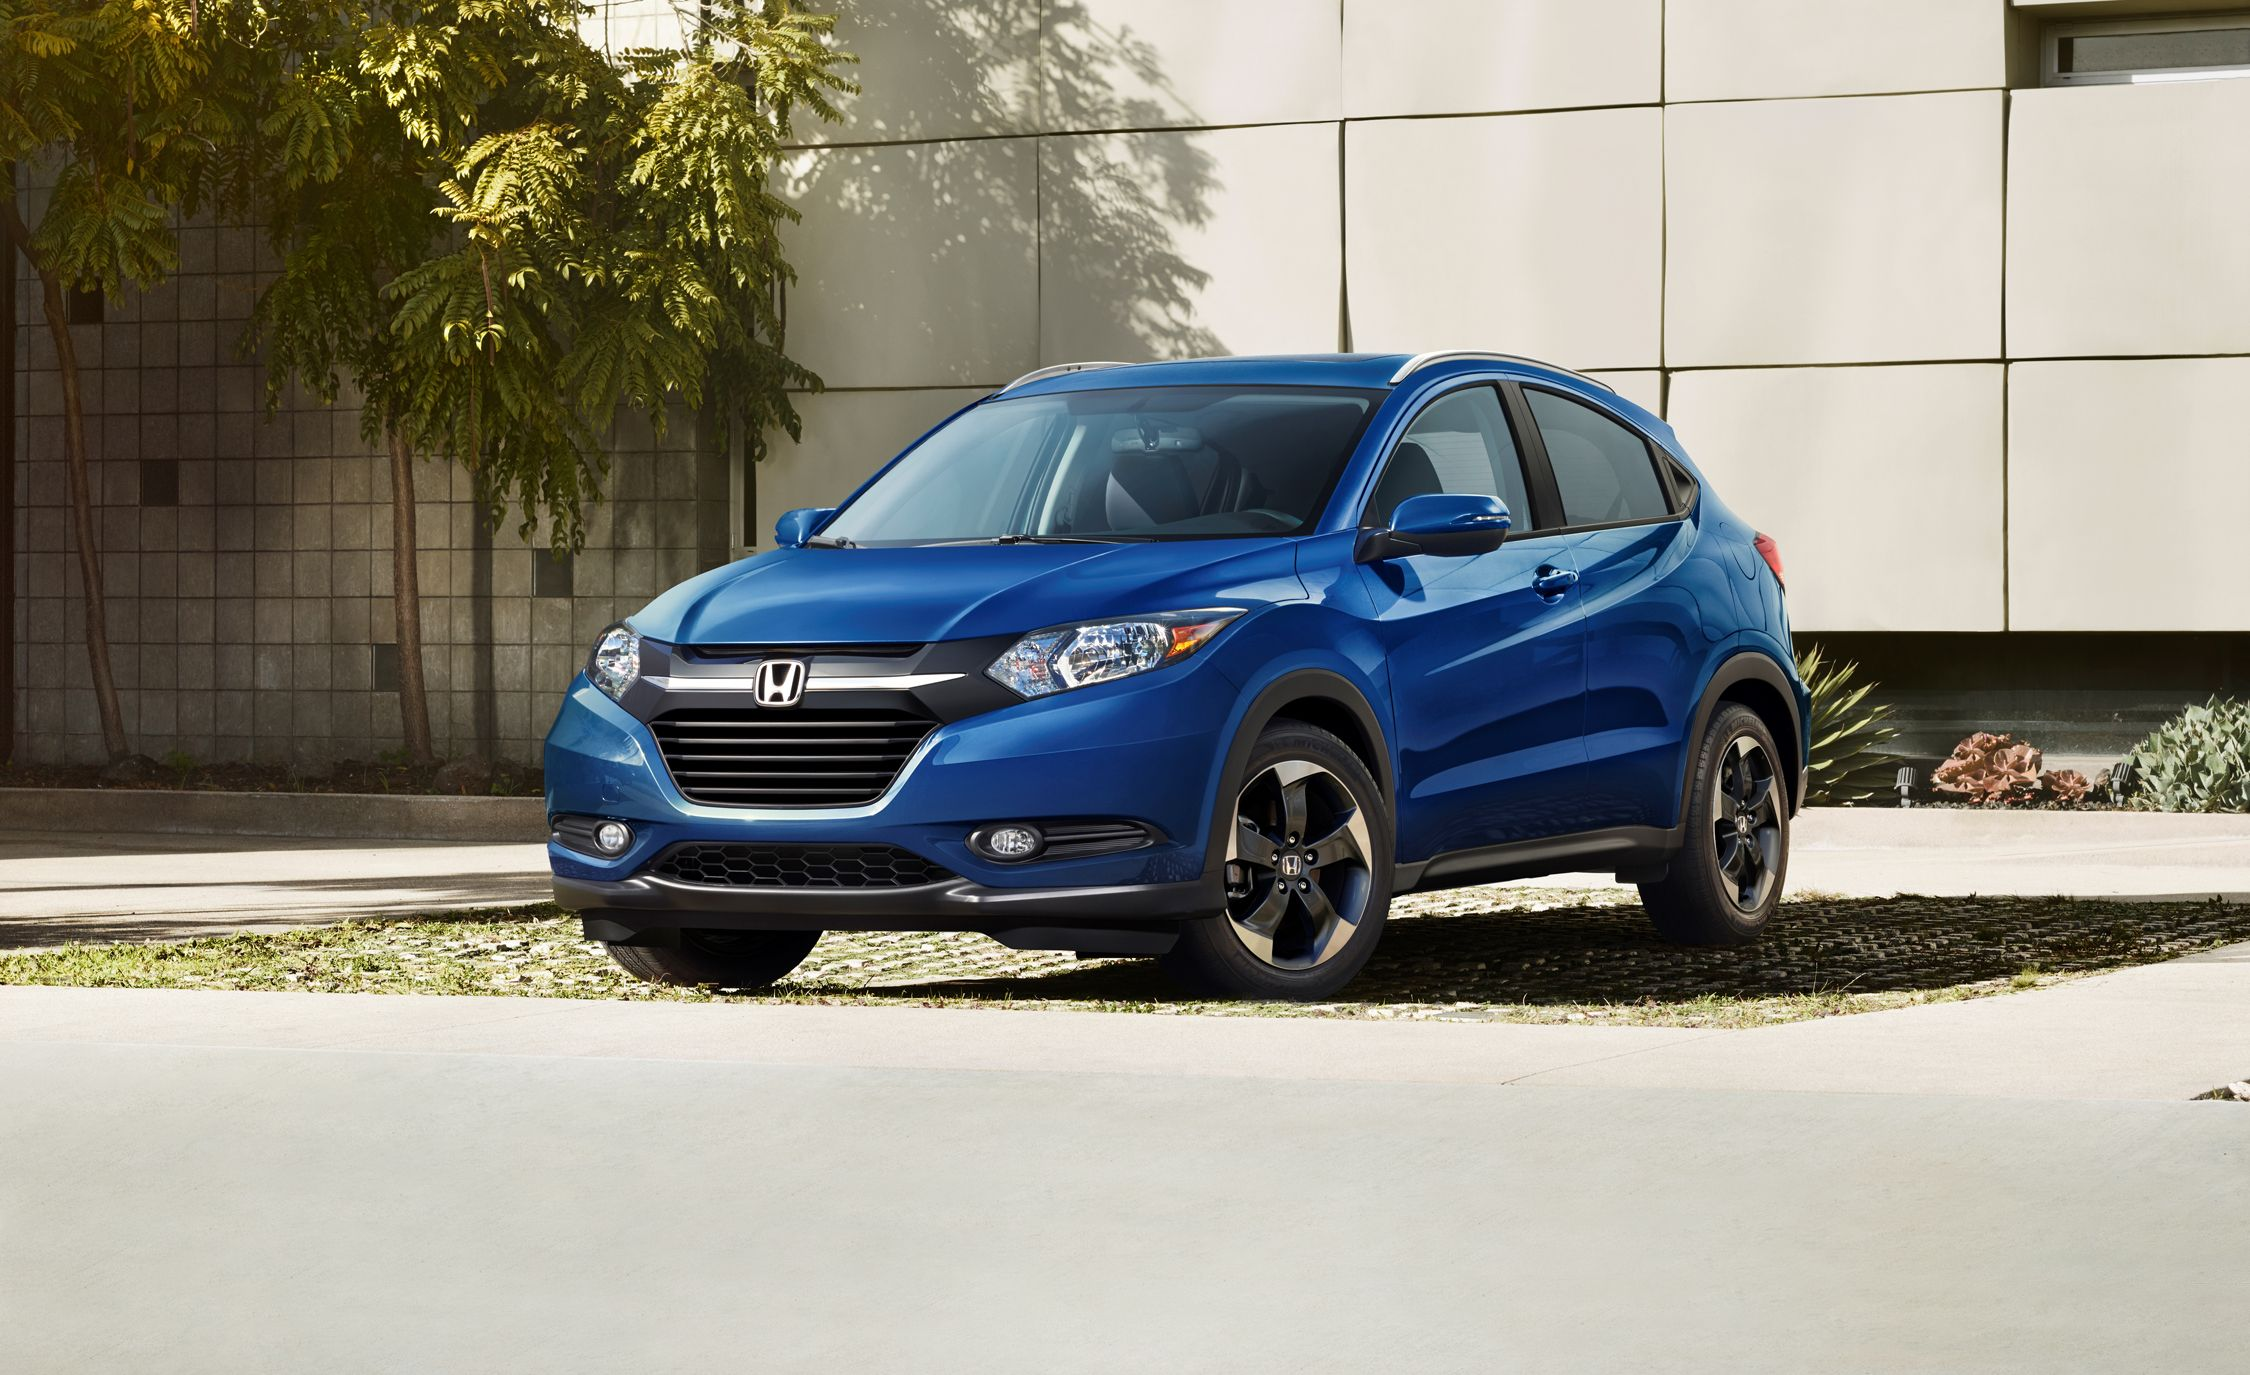 Honda Brv 2018 Price >> 2018 Honda HR-V | In-Depth Model Review | Car and Driver